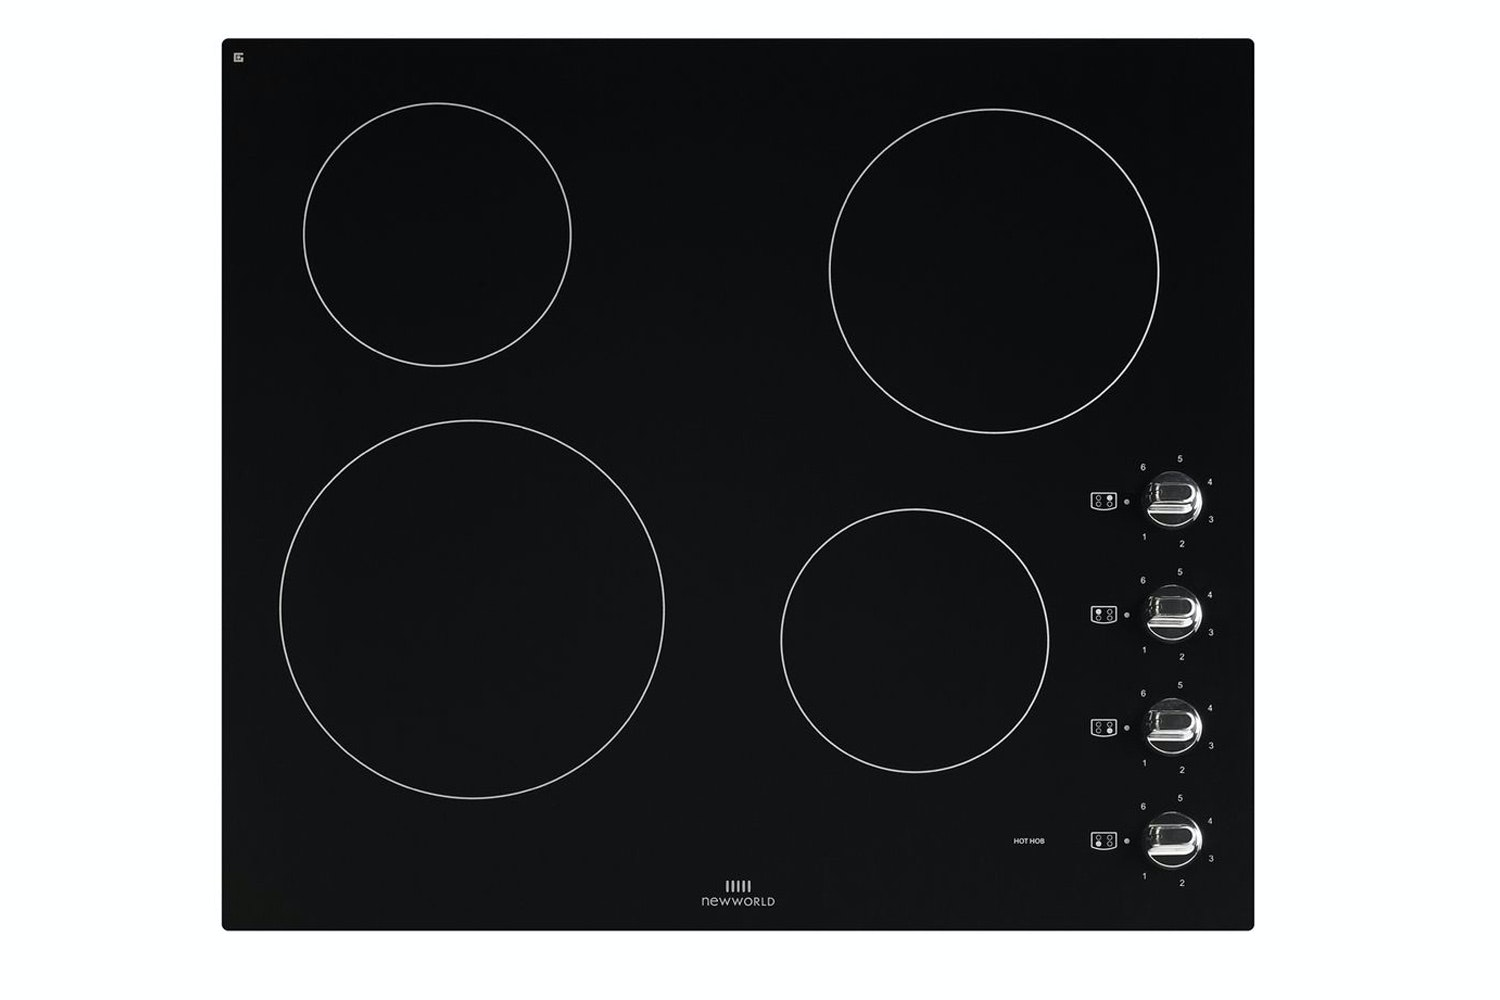 New World Ceramic Electric Hob | NWCR602